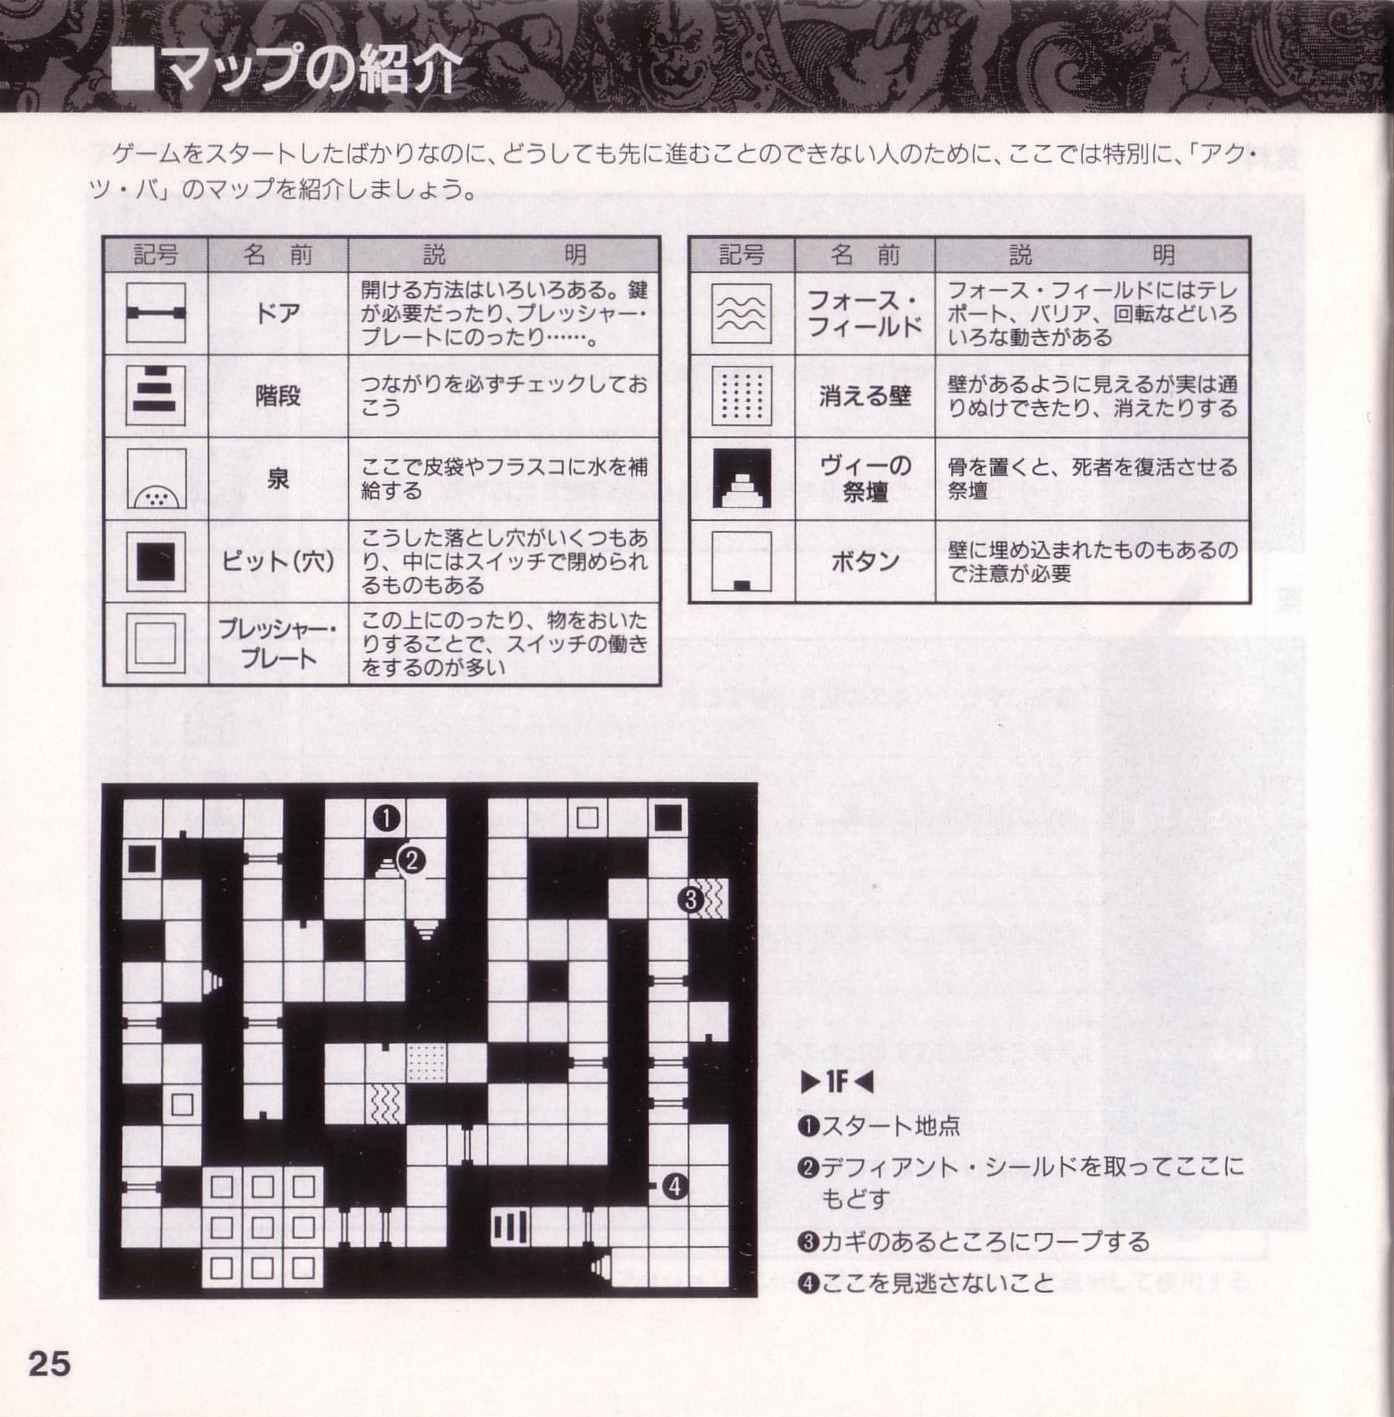 Game - Theron's Quest - JP - PC Engine - Booklet - Page 028 - Scan